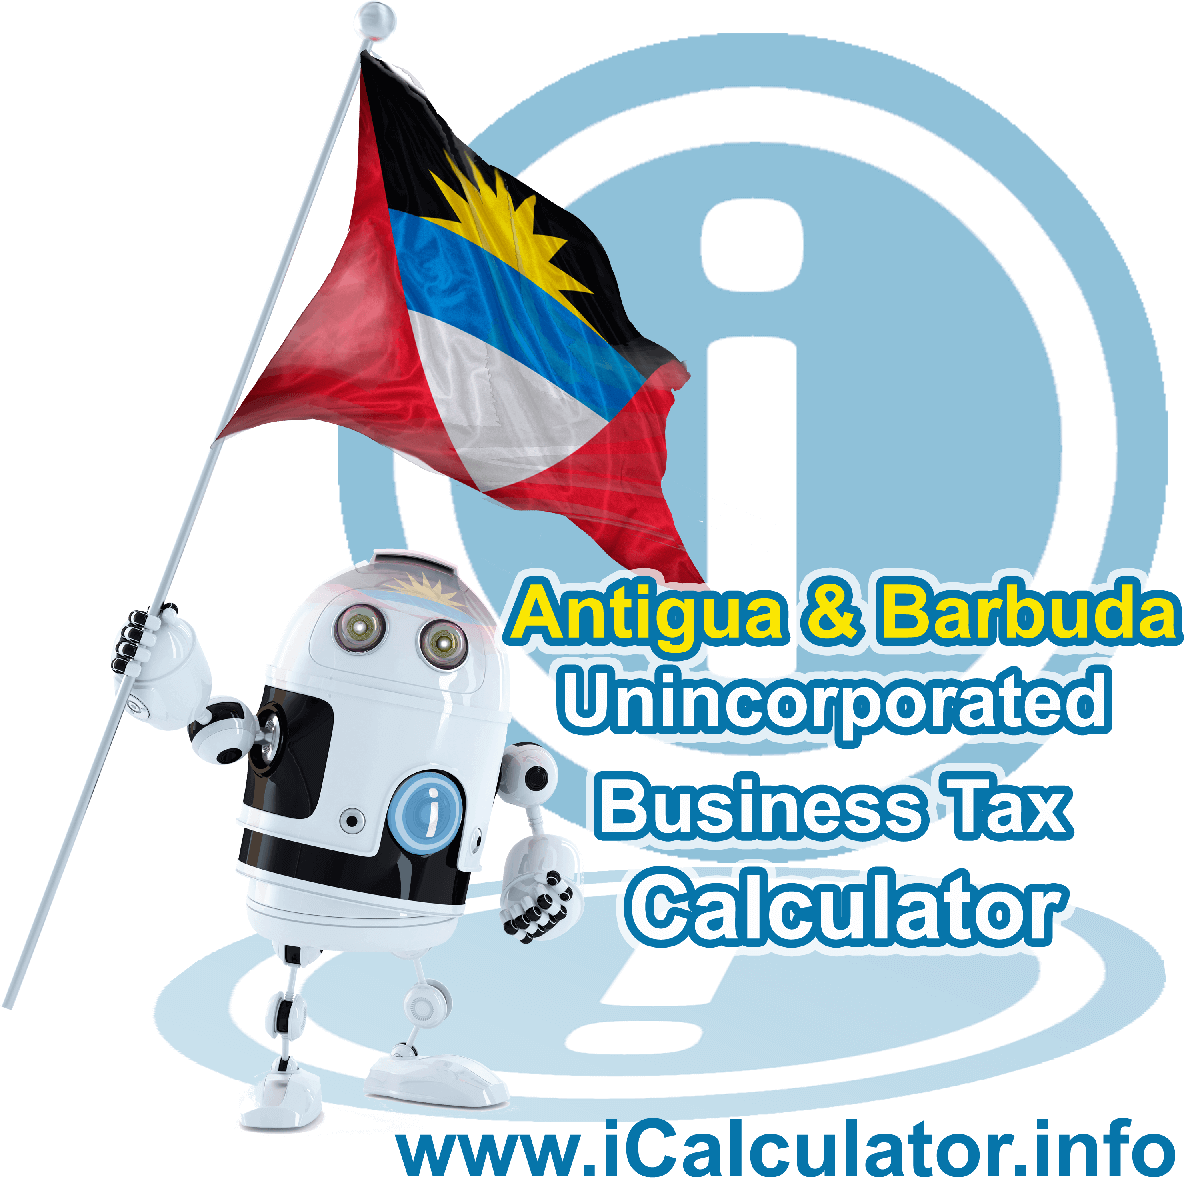 Antigua and Barbuda UBT Calculator 2021. This image shows the Antigua and Barbuda flag and information relating to the tax formula for the Antigua and Barbuda Unincorporated Business Tax Calculator